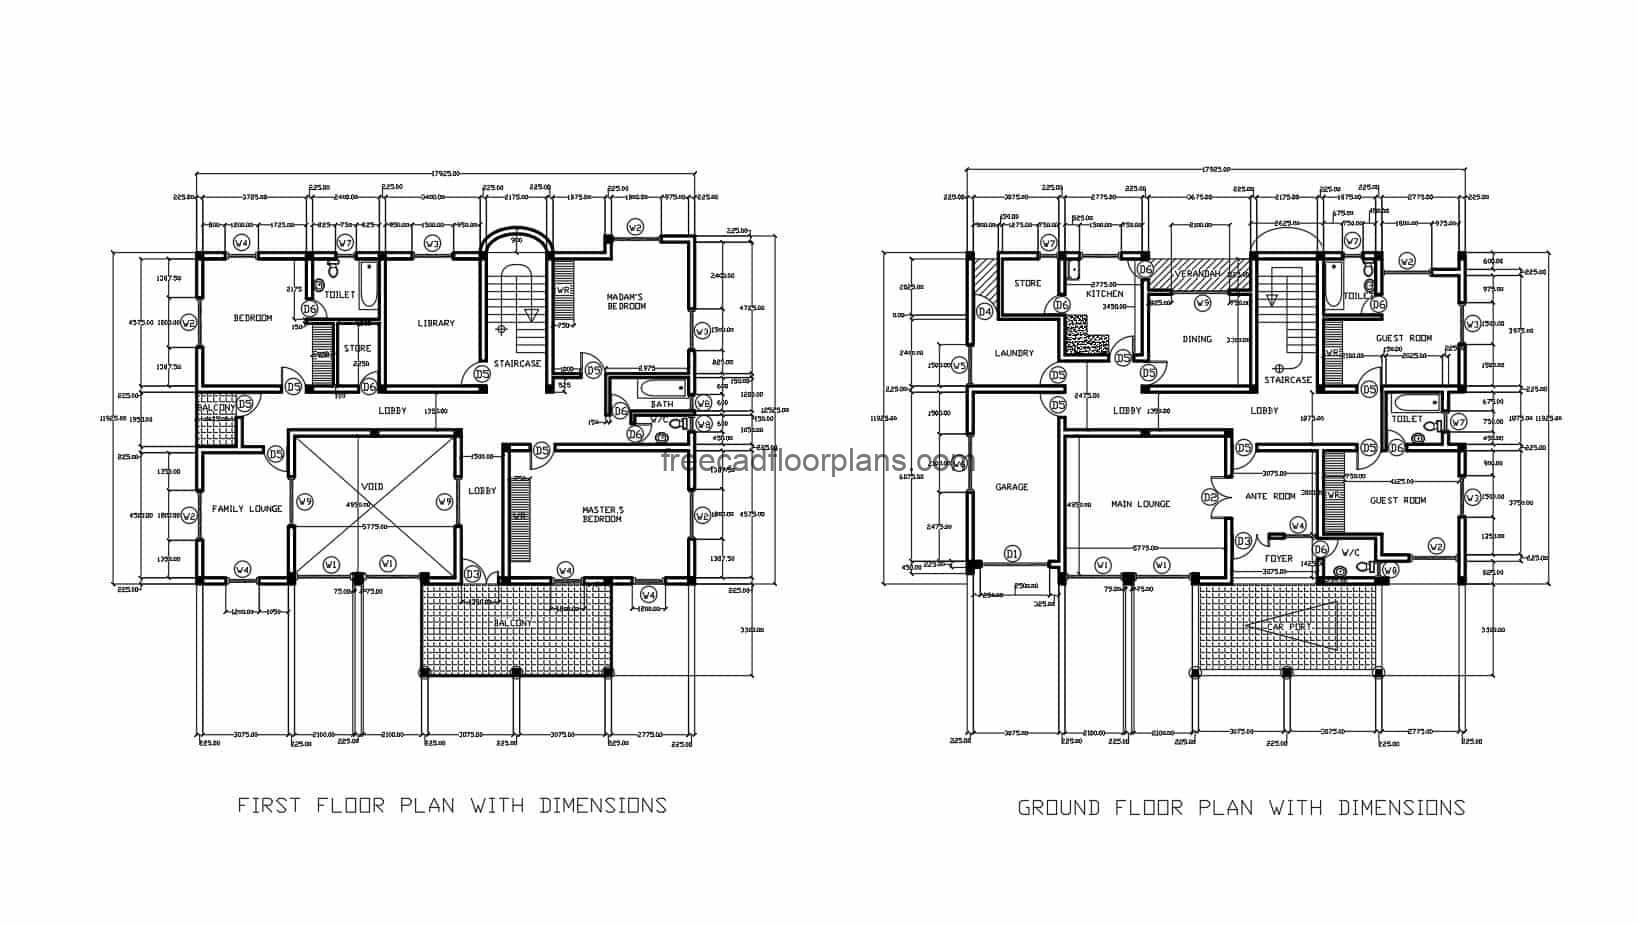 Architectural and dimensioned plans of a two-level duplex residence with sloping roofs and five bedrooms in total, the project contains architectural and dimensioned plans, facade elevations, sections, roof plan and details of doors and windows. File for free download in Autocad DWG format, 2D drawing with editable Autocad blocks.